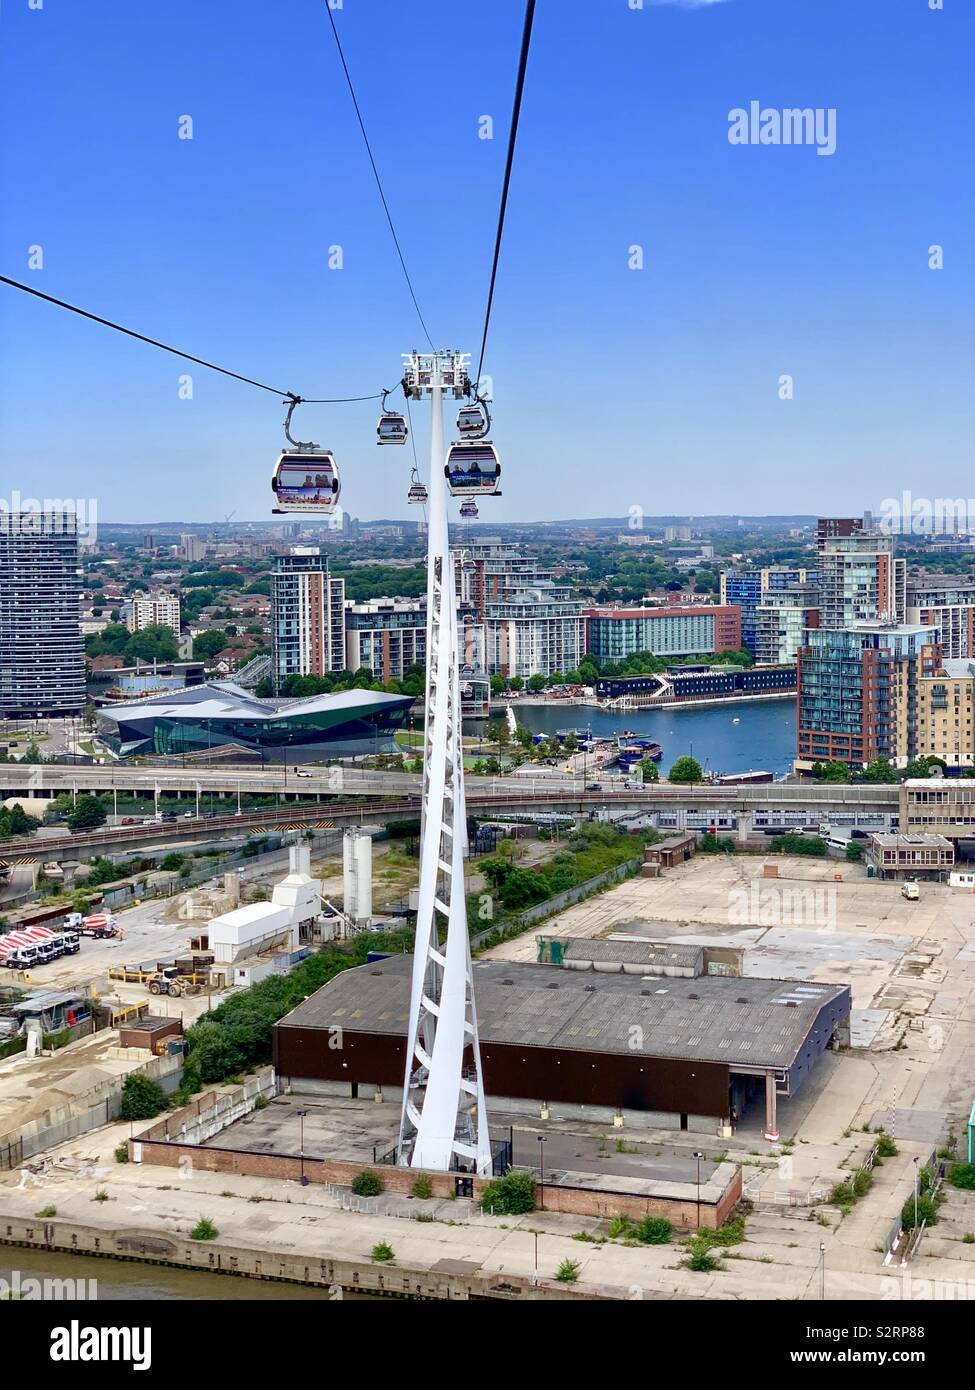 Greenwich, UK: 5 July 2019: The Emirates Air Line cable car between the Royal Victoria dock and the Greenwich peninsula. - Stock Image